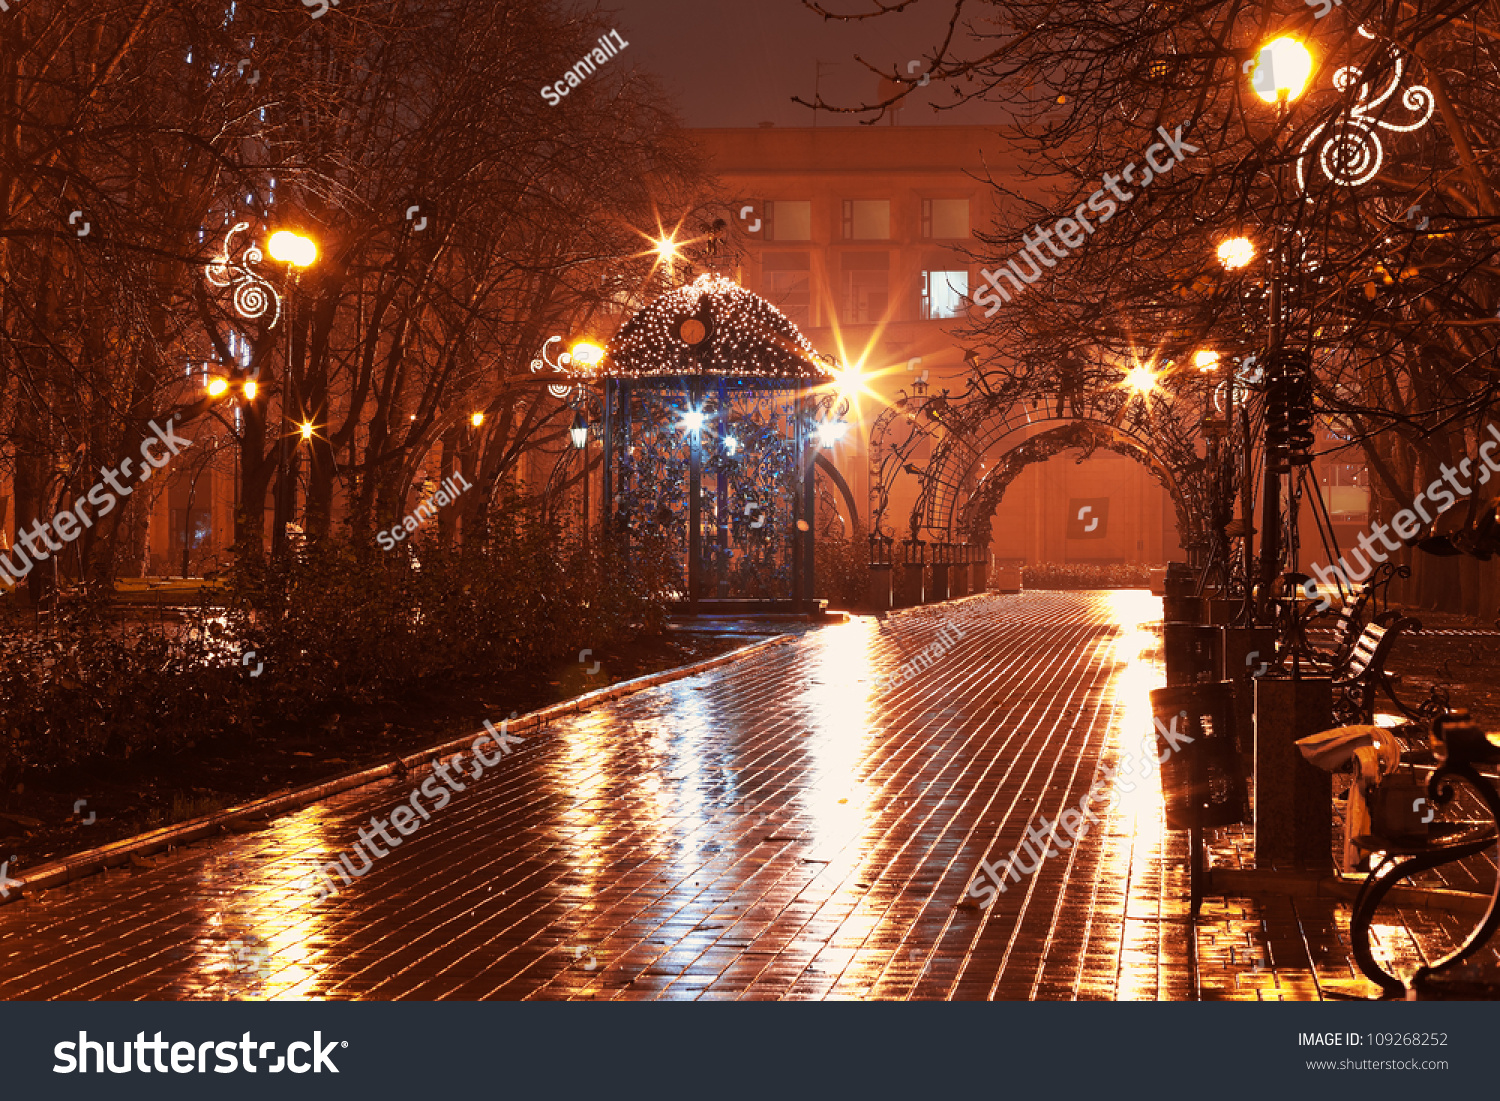 Scenic View Empty Night Alley City Stock Photo (Royalty Free ... for Empty City Street At Night Raining  45hul